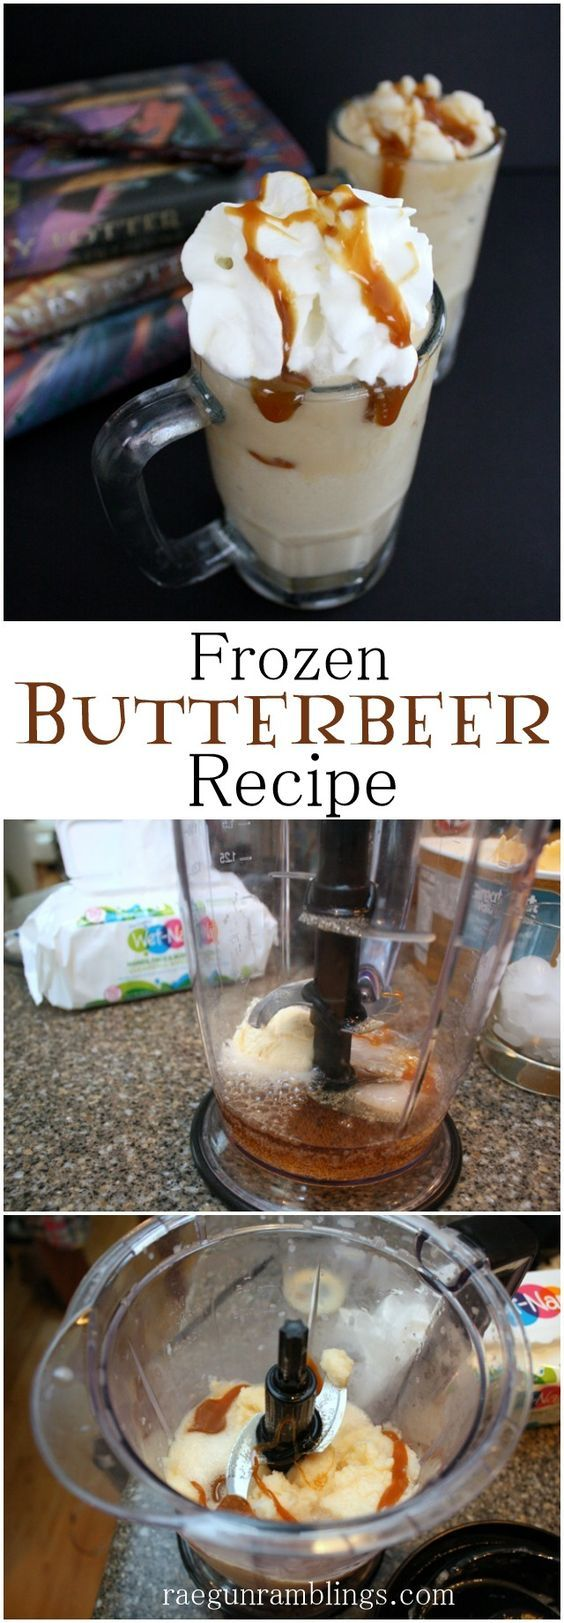 Delicious Frozen Butterbeer recipe just like Potterland - Rae Gun Ramblings: